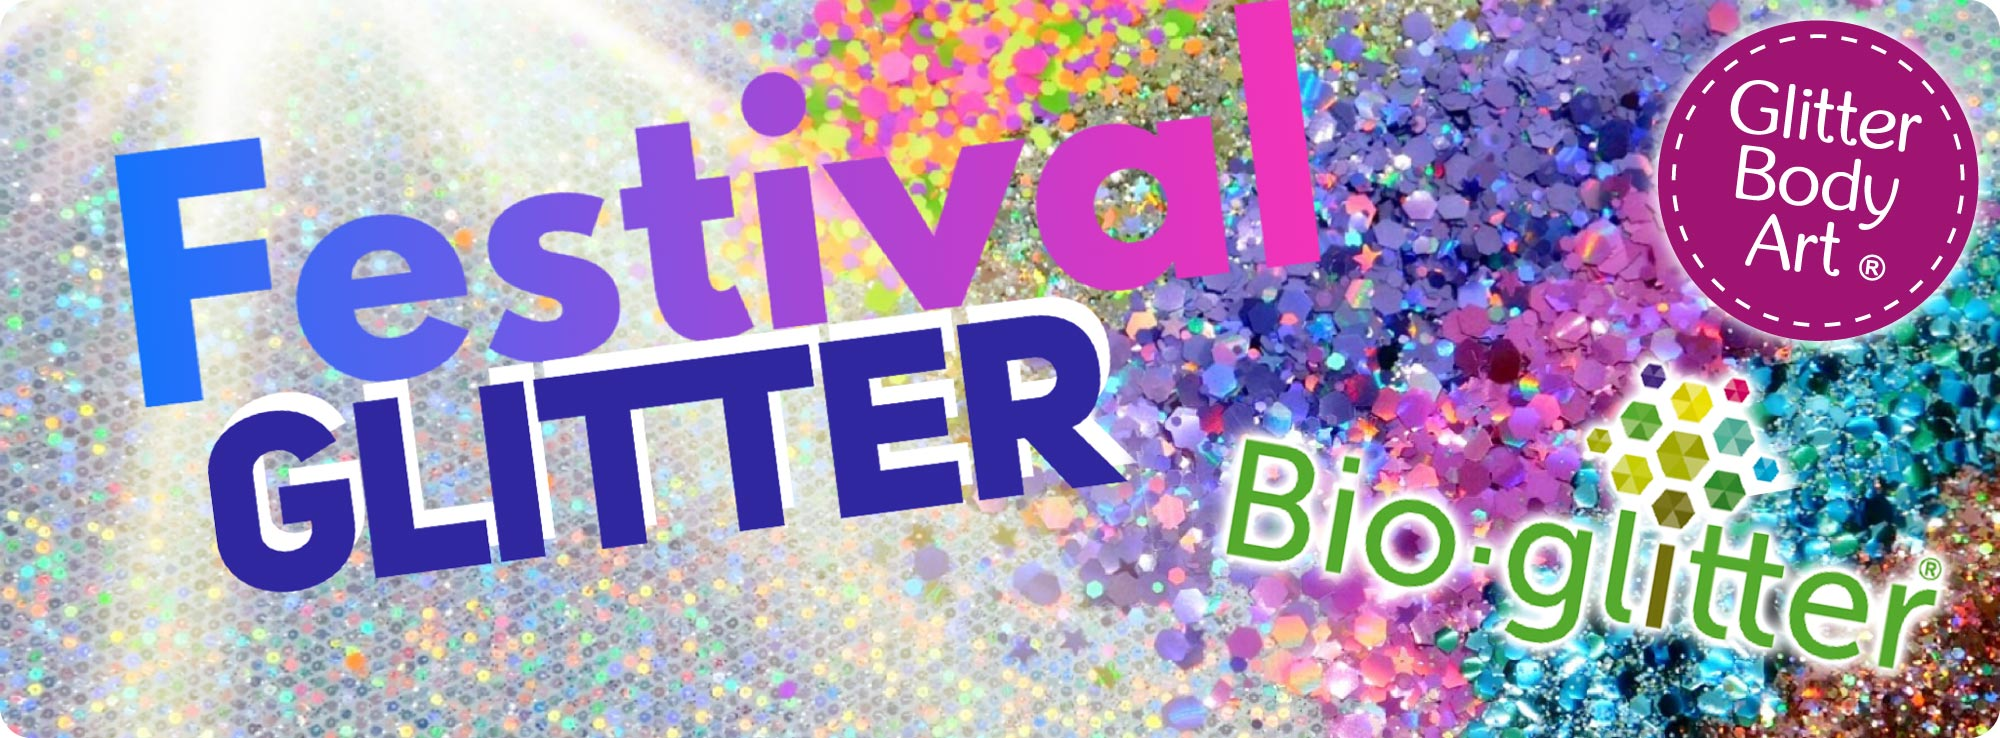 festival glitter collections